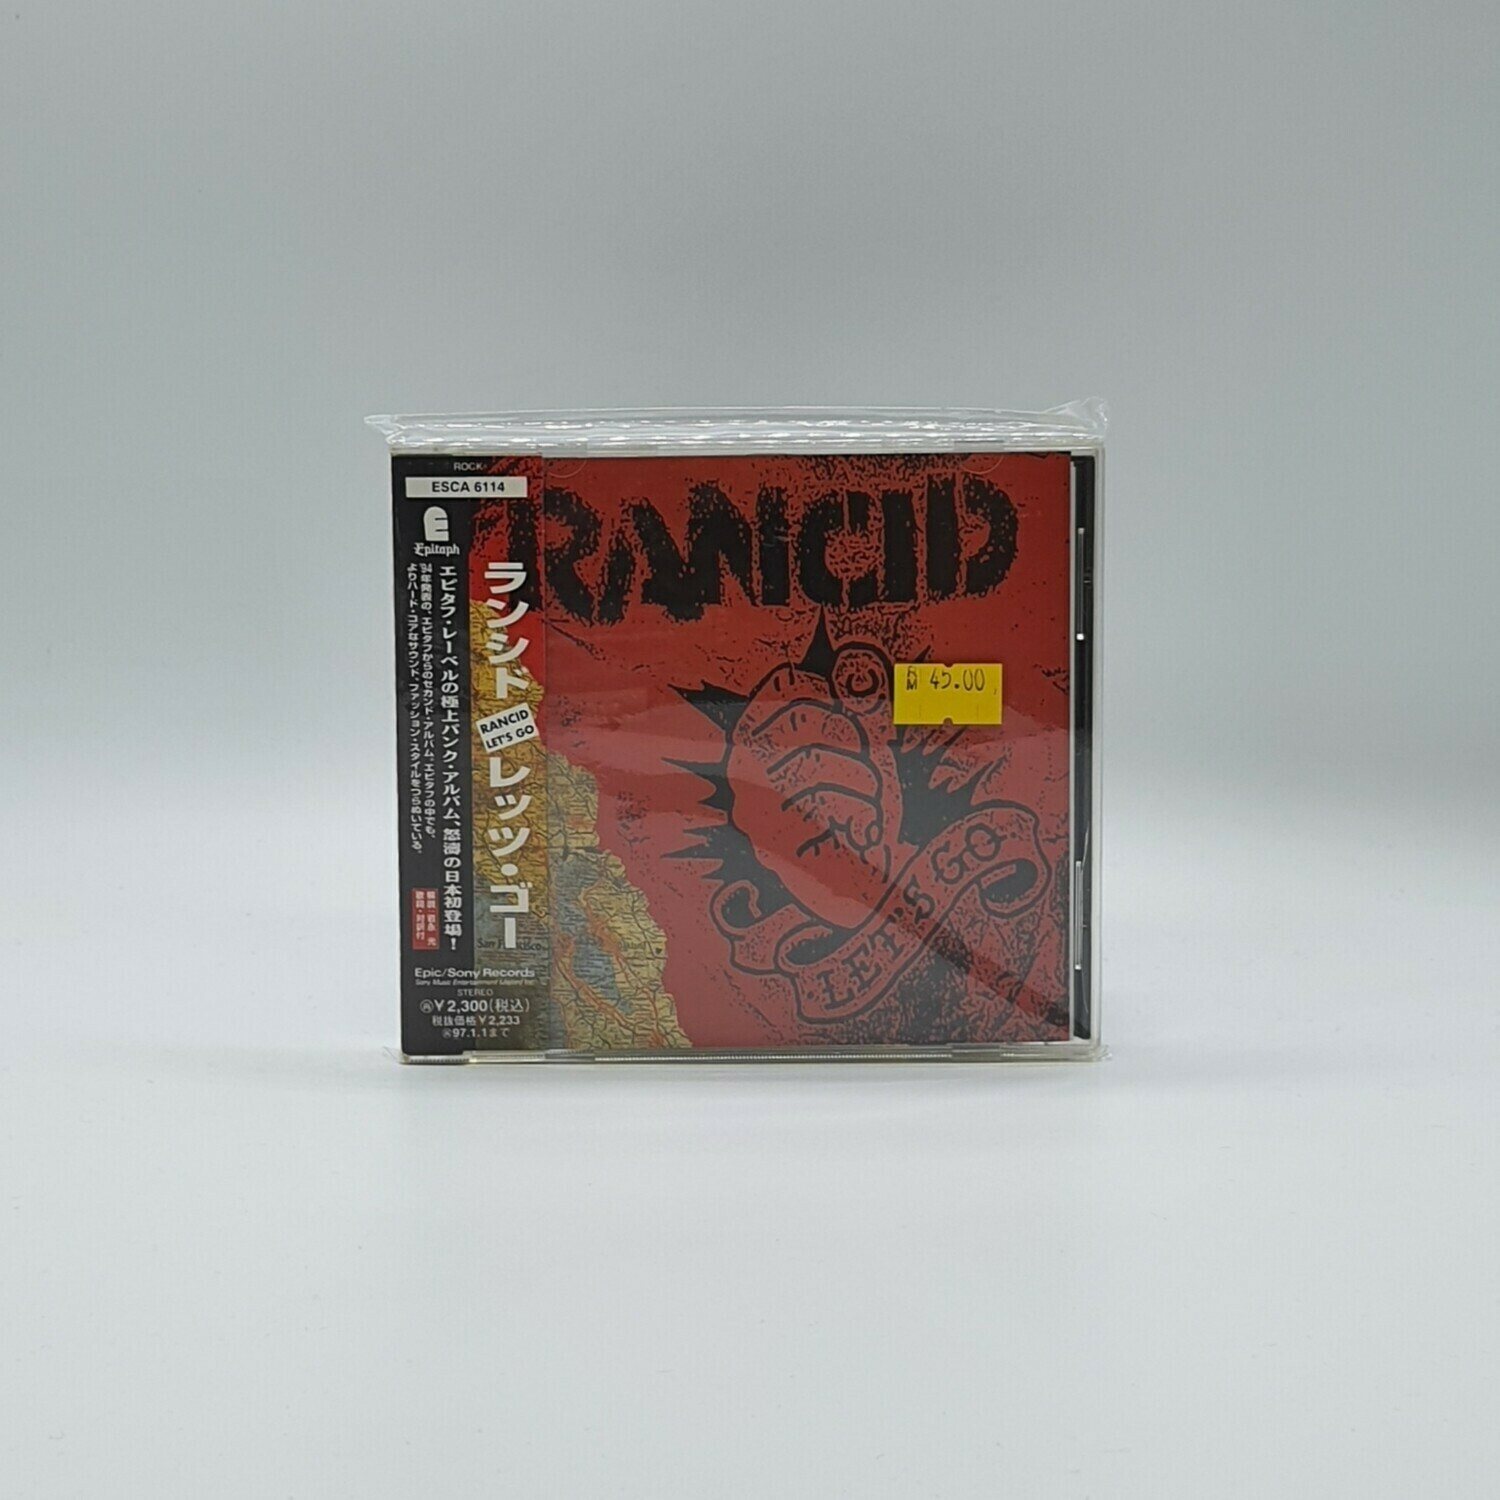 RANCID -LETS GO- CD (JAPAN PRESS)